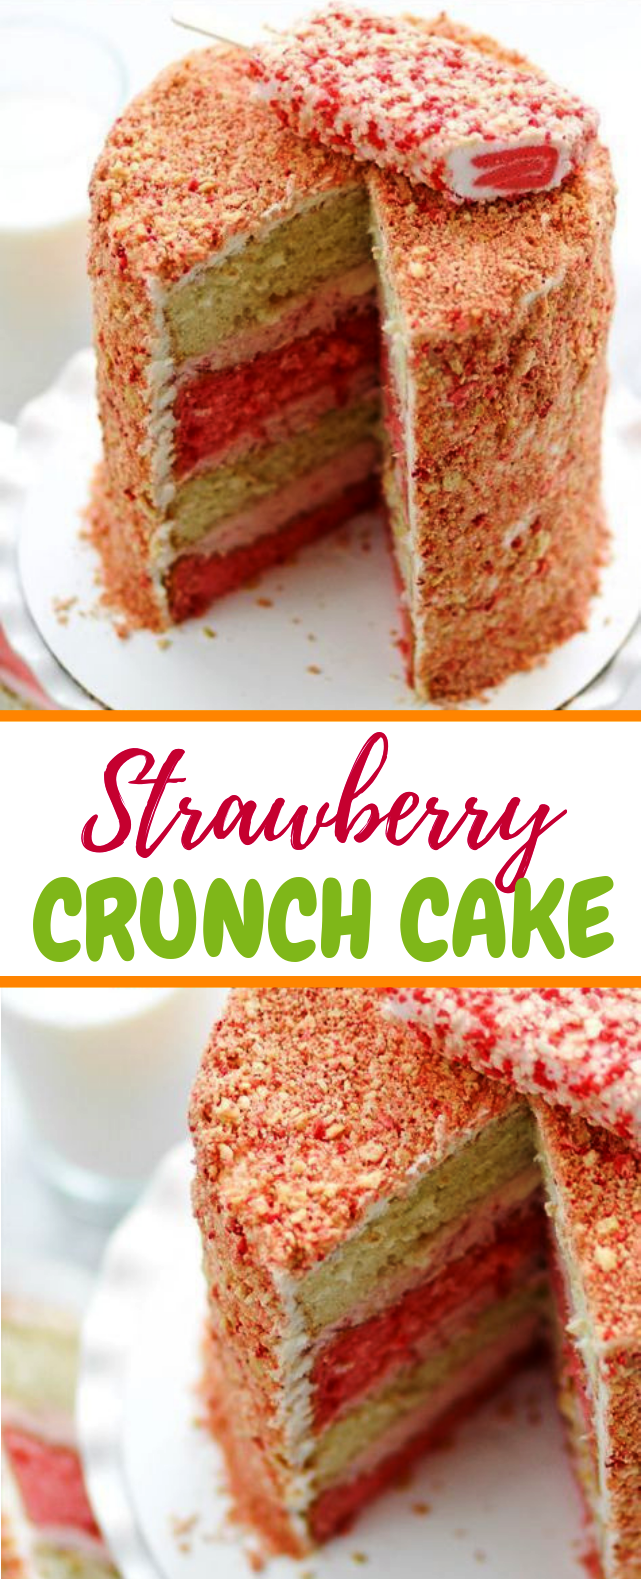 Strawberry Crunch Cake #dessert #yummycake